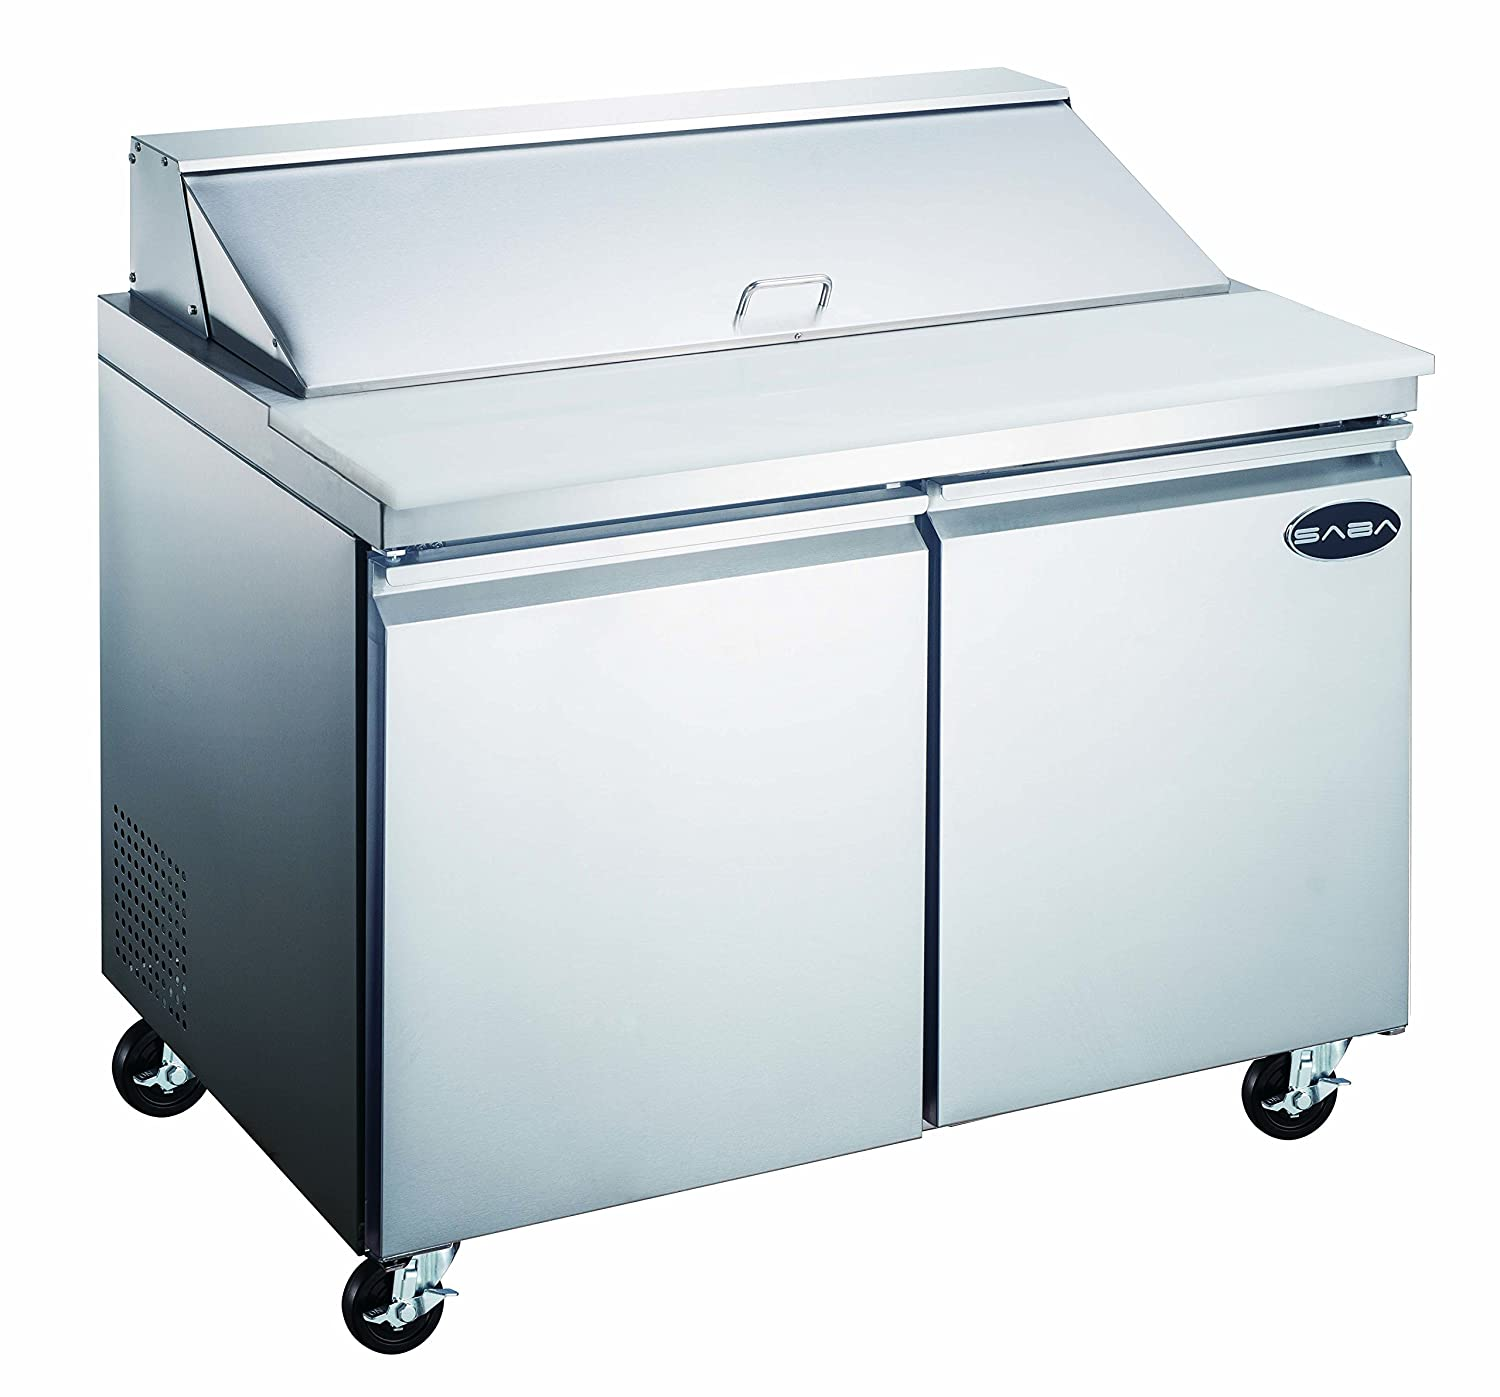 Heavy Duty Commercial Sandwich Salad Prep Table Refrigerator Cooler 2 Door 48""